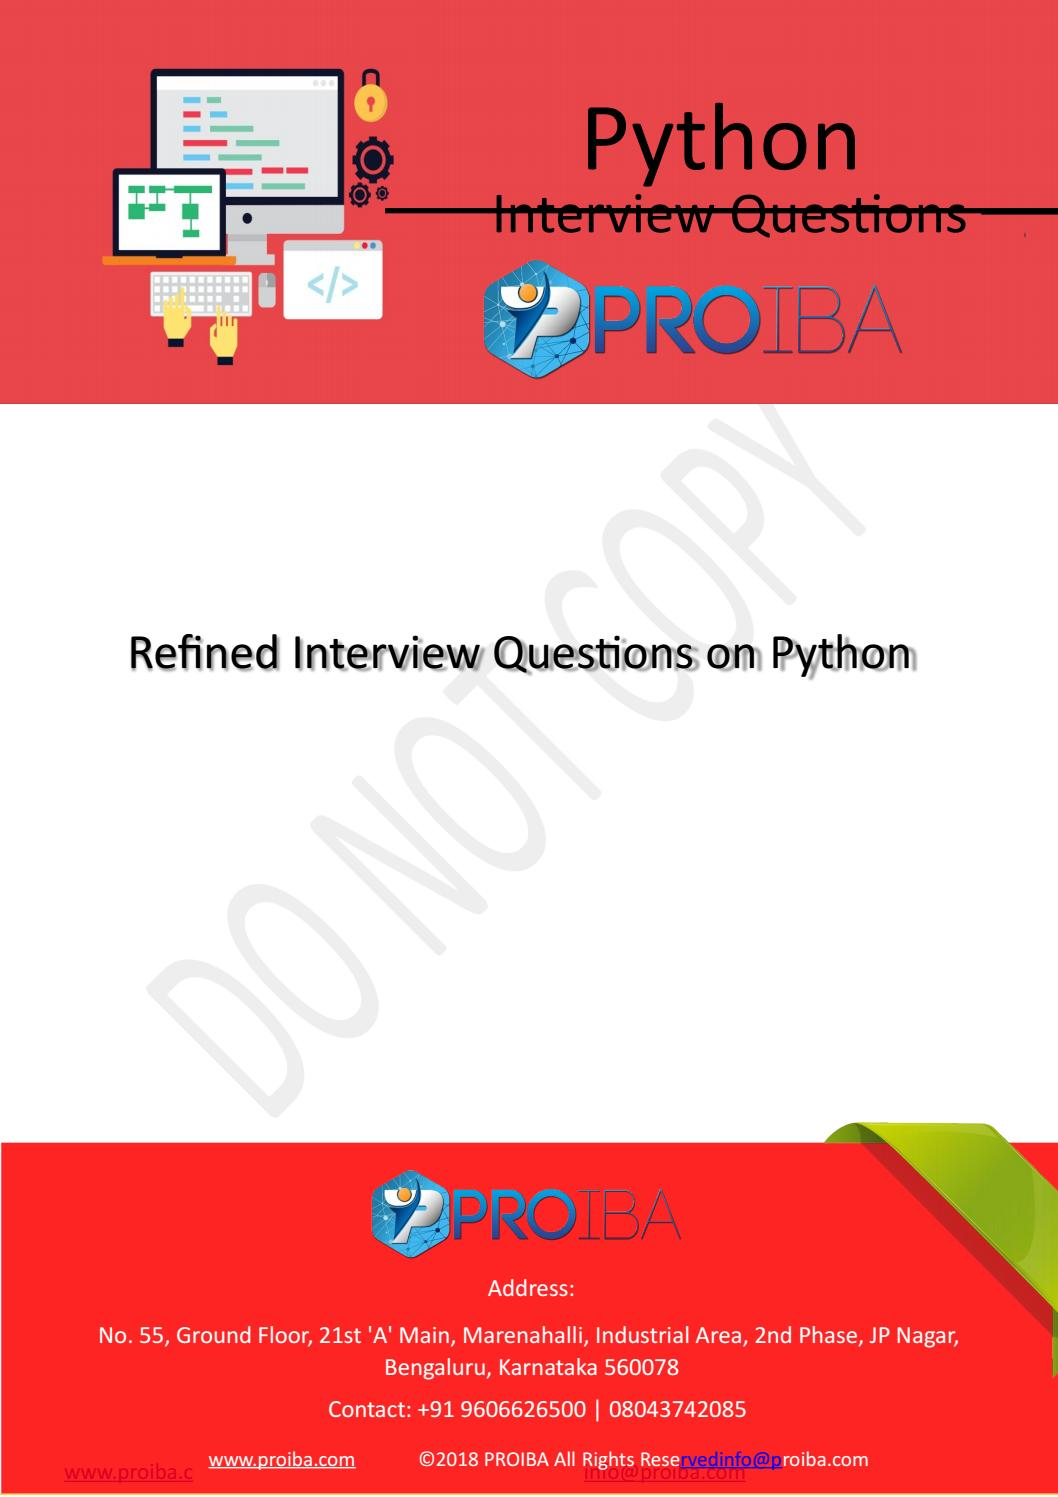 Best Python Training Institute for Business Analysis in